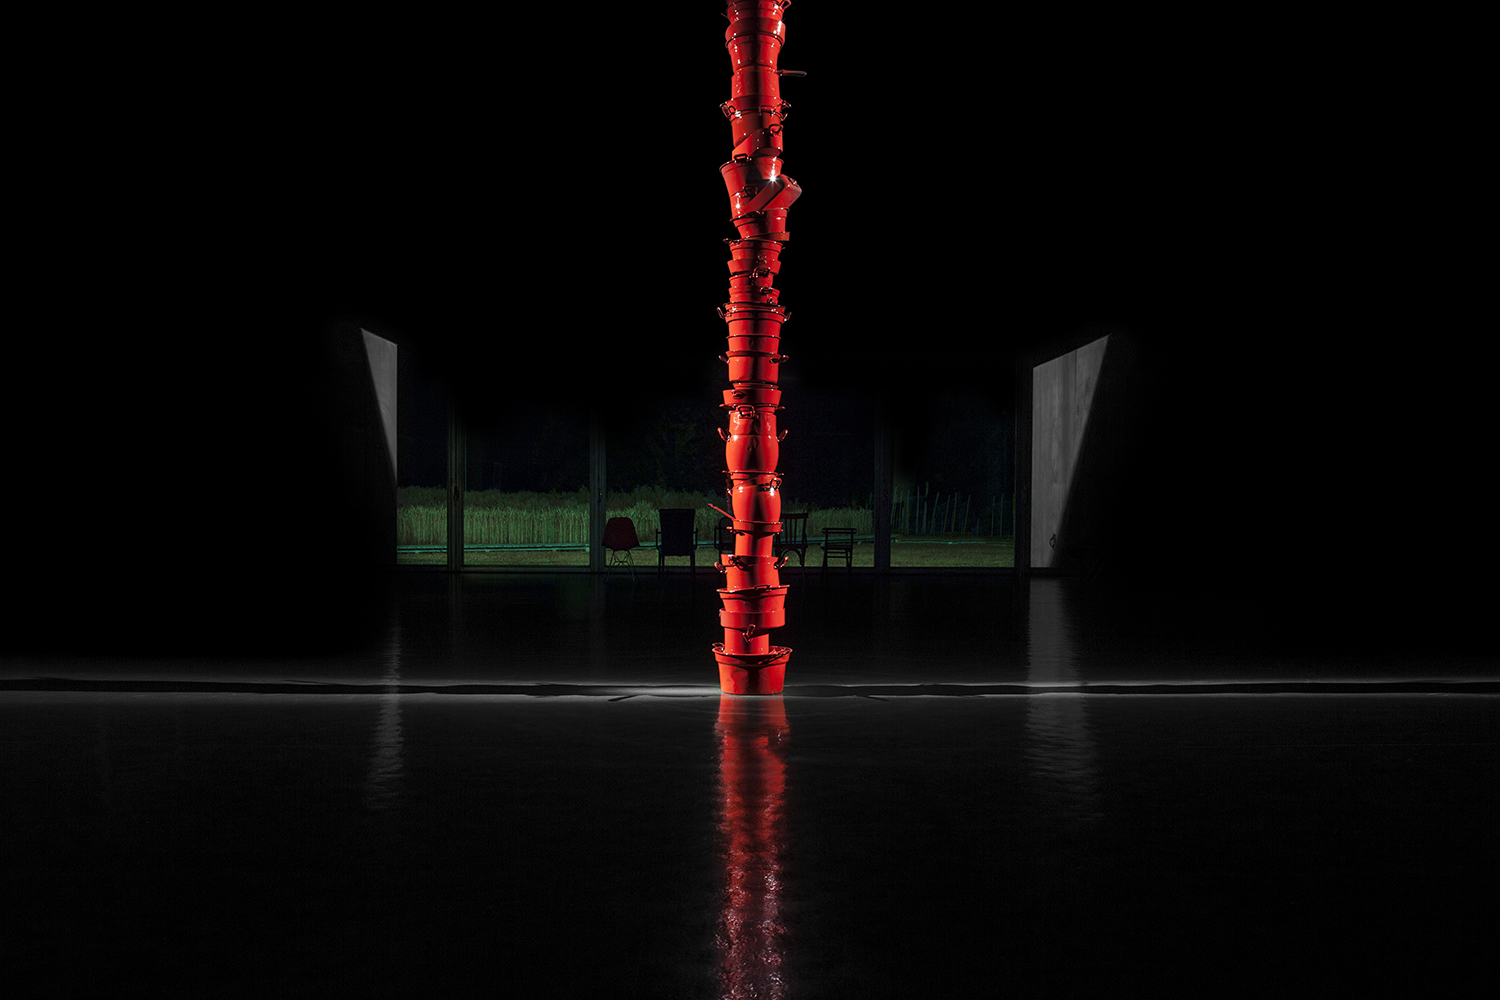 COLONNA-Ø VARIABLE DIAMETER – HEIGHT 3.65 M – POTS, PANS, RED ENAMEL-©2019 – edition of 1-(courtesy Antonello Colonna collection)